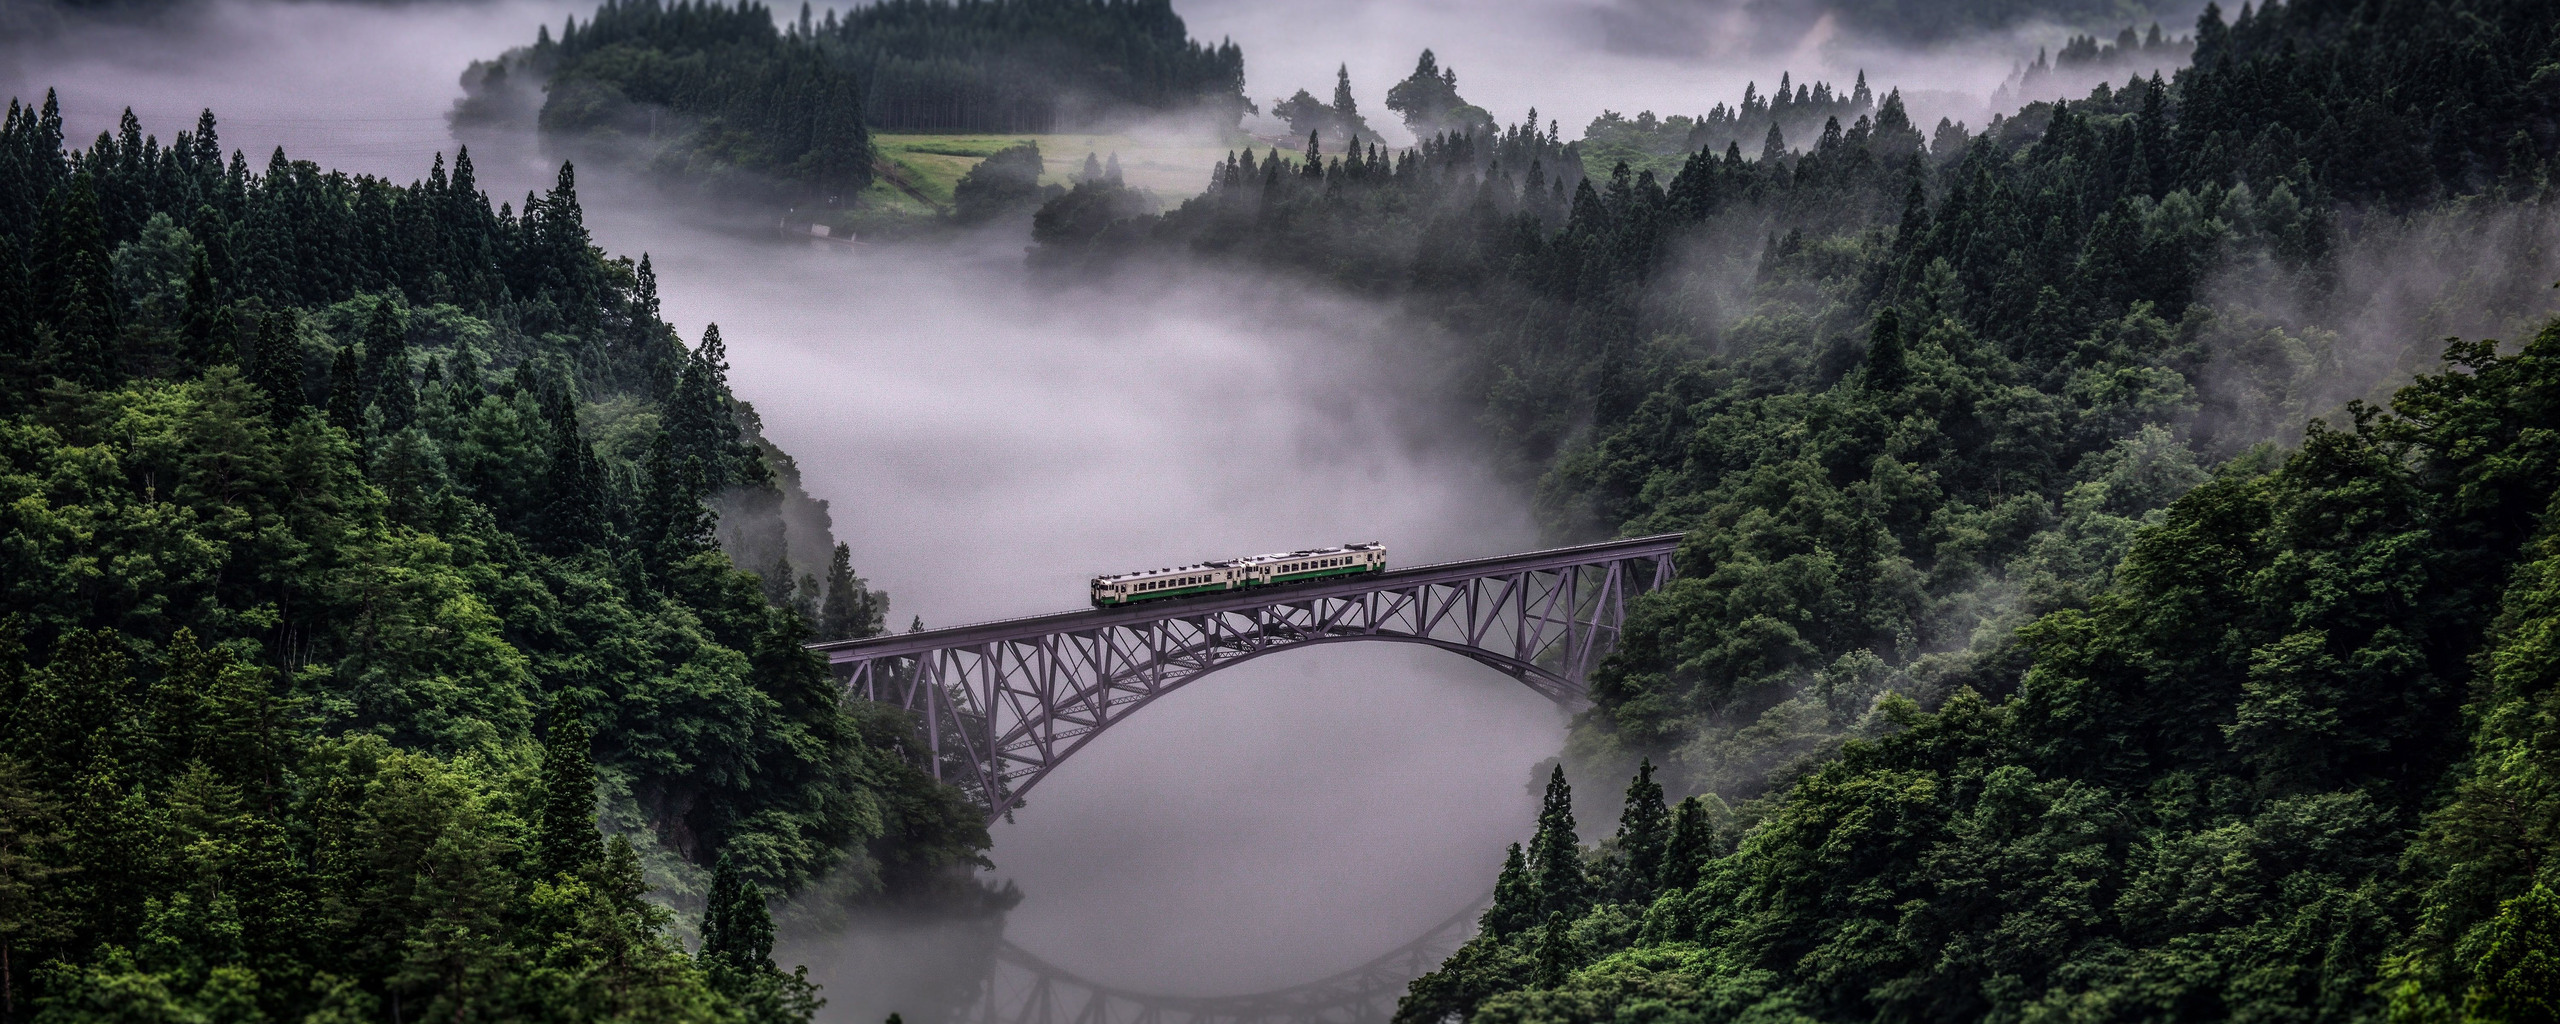 2560x1024 Train Going Over Bridge Surrounded By Trees And River 2560x1024 Resolution HD 4k Wallpapers, Images, Backgrounds, Photos and Pictures